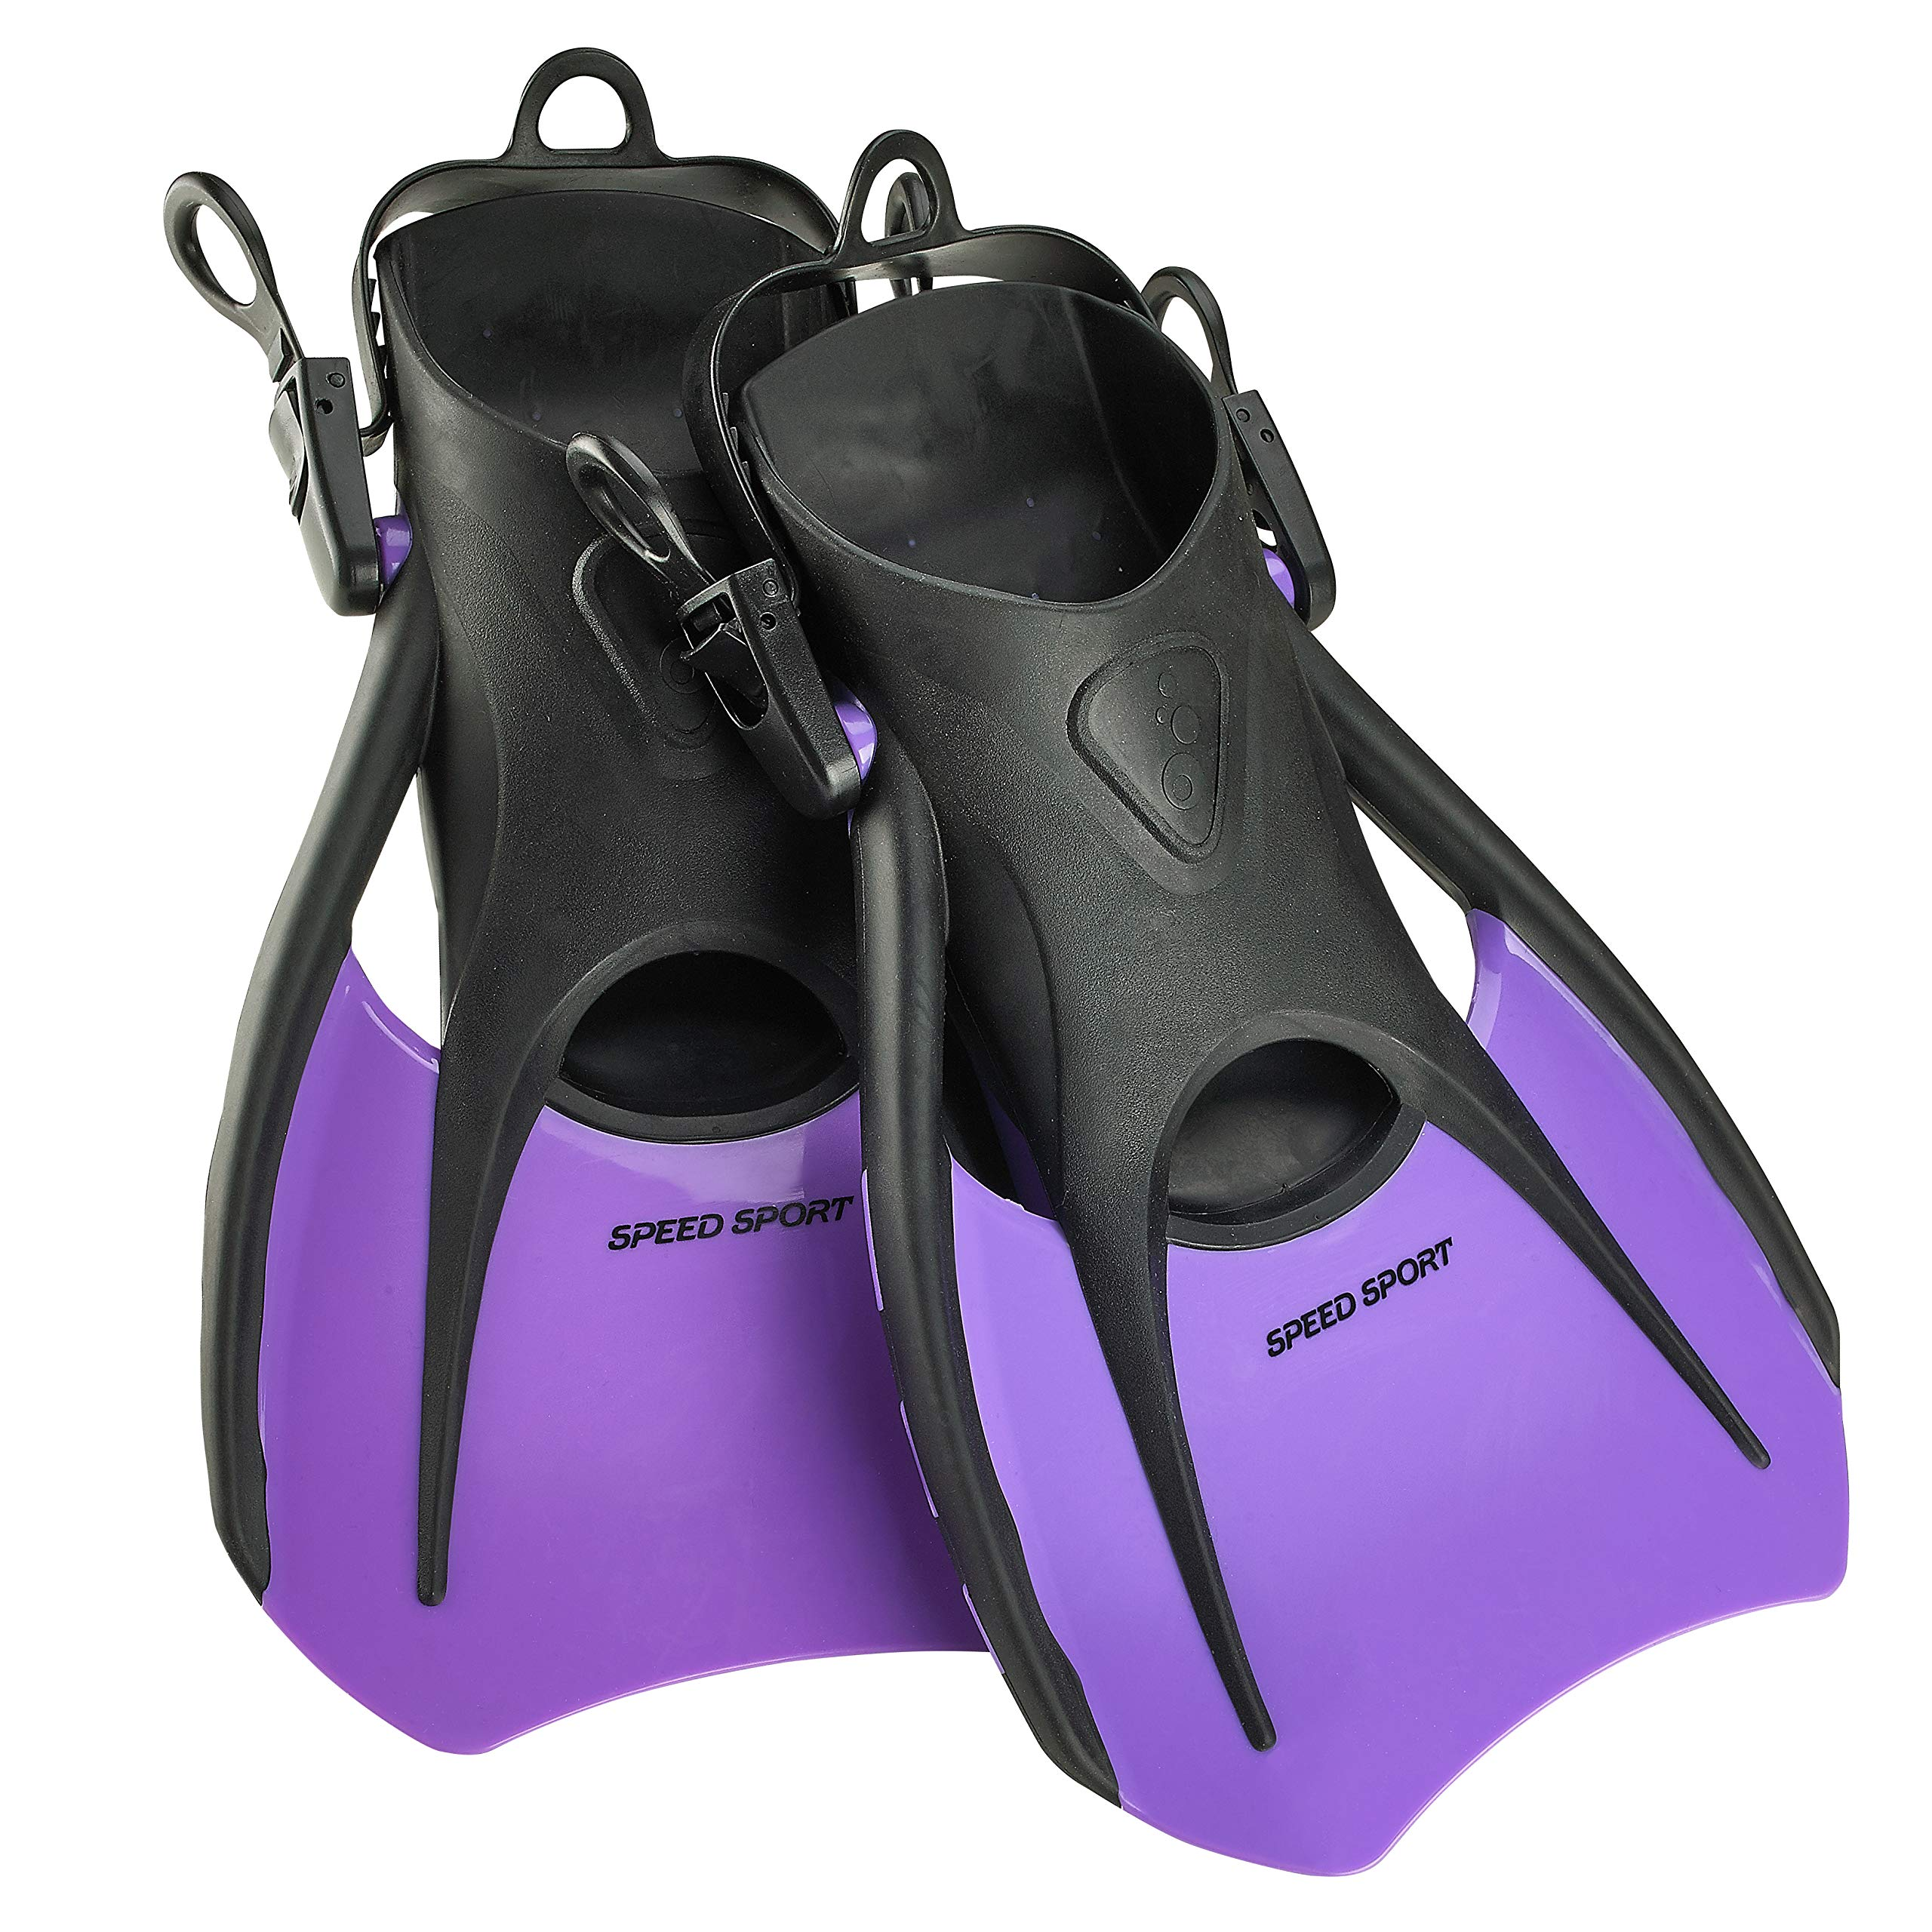 Phantom Aquatics Snorkeling Diving Fins - Open Heel Traveling Sport Fins - PR-SM